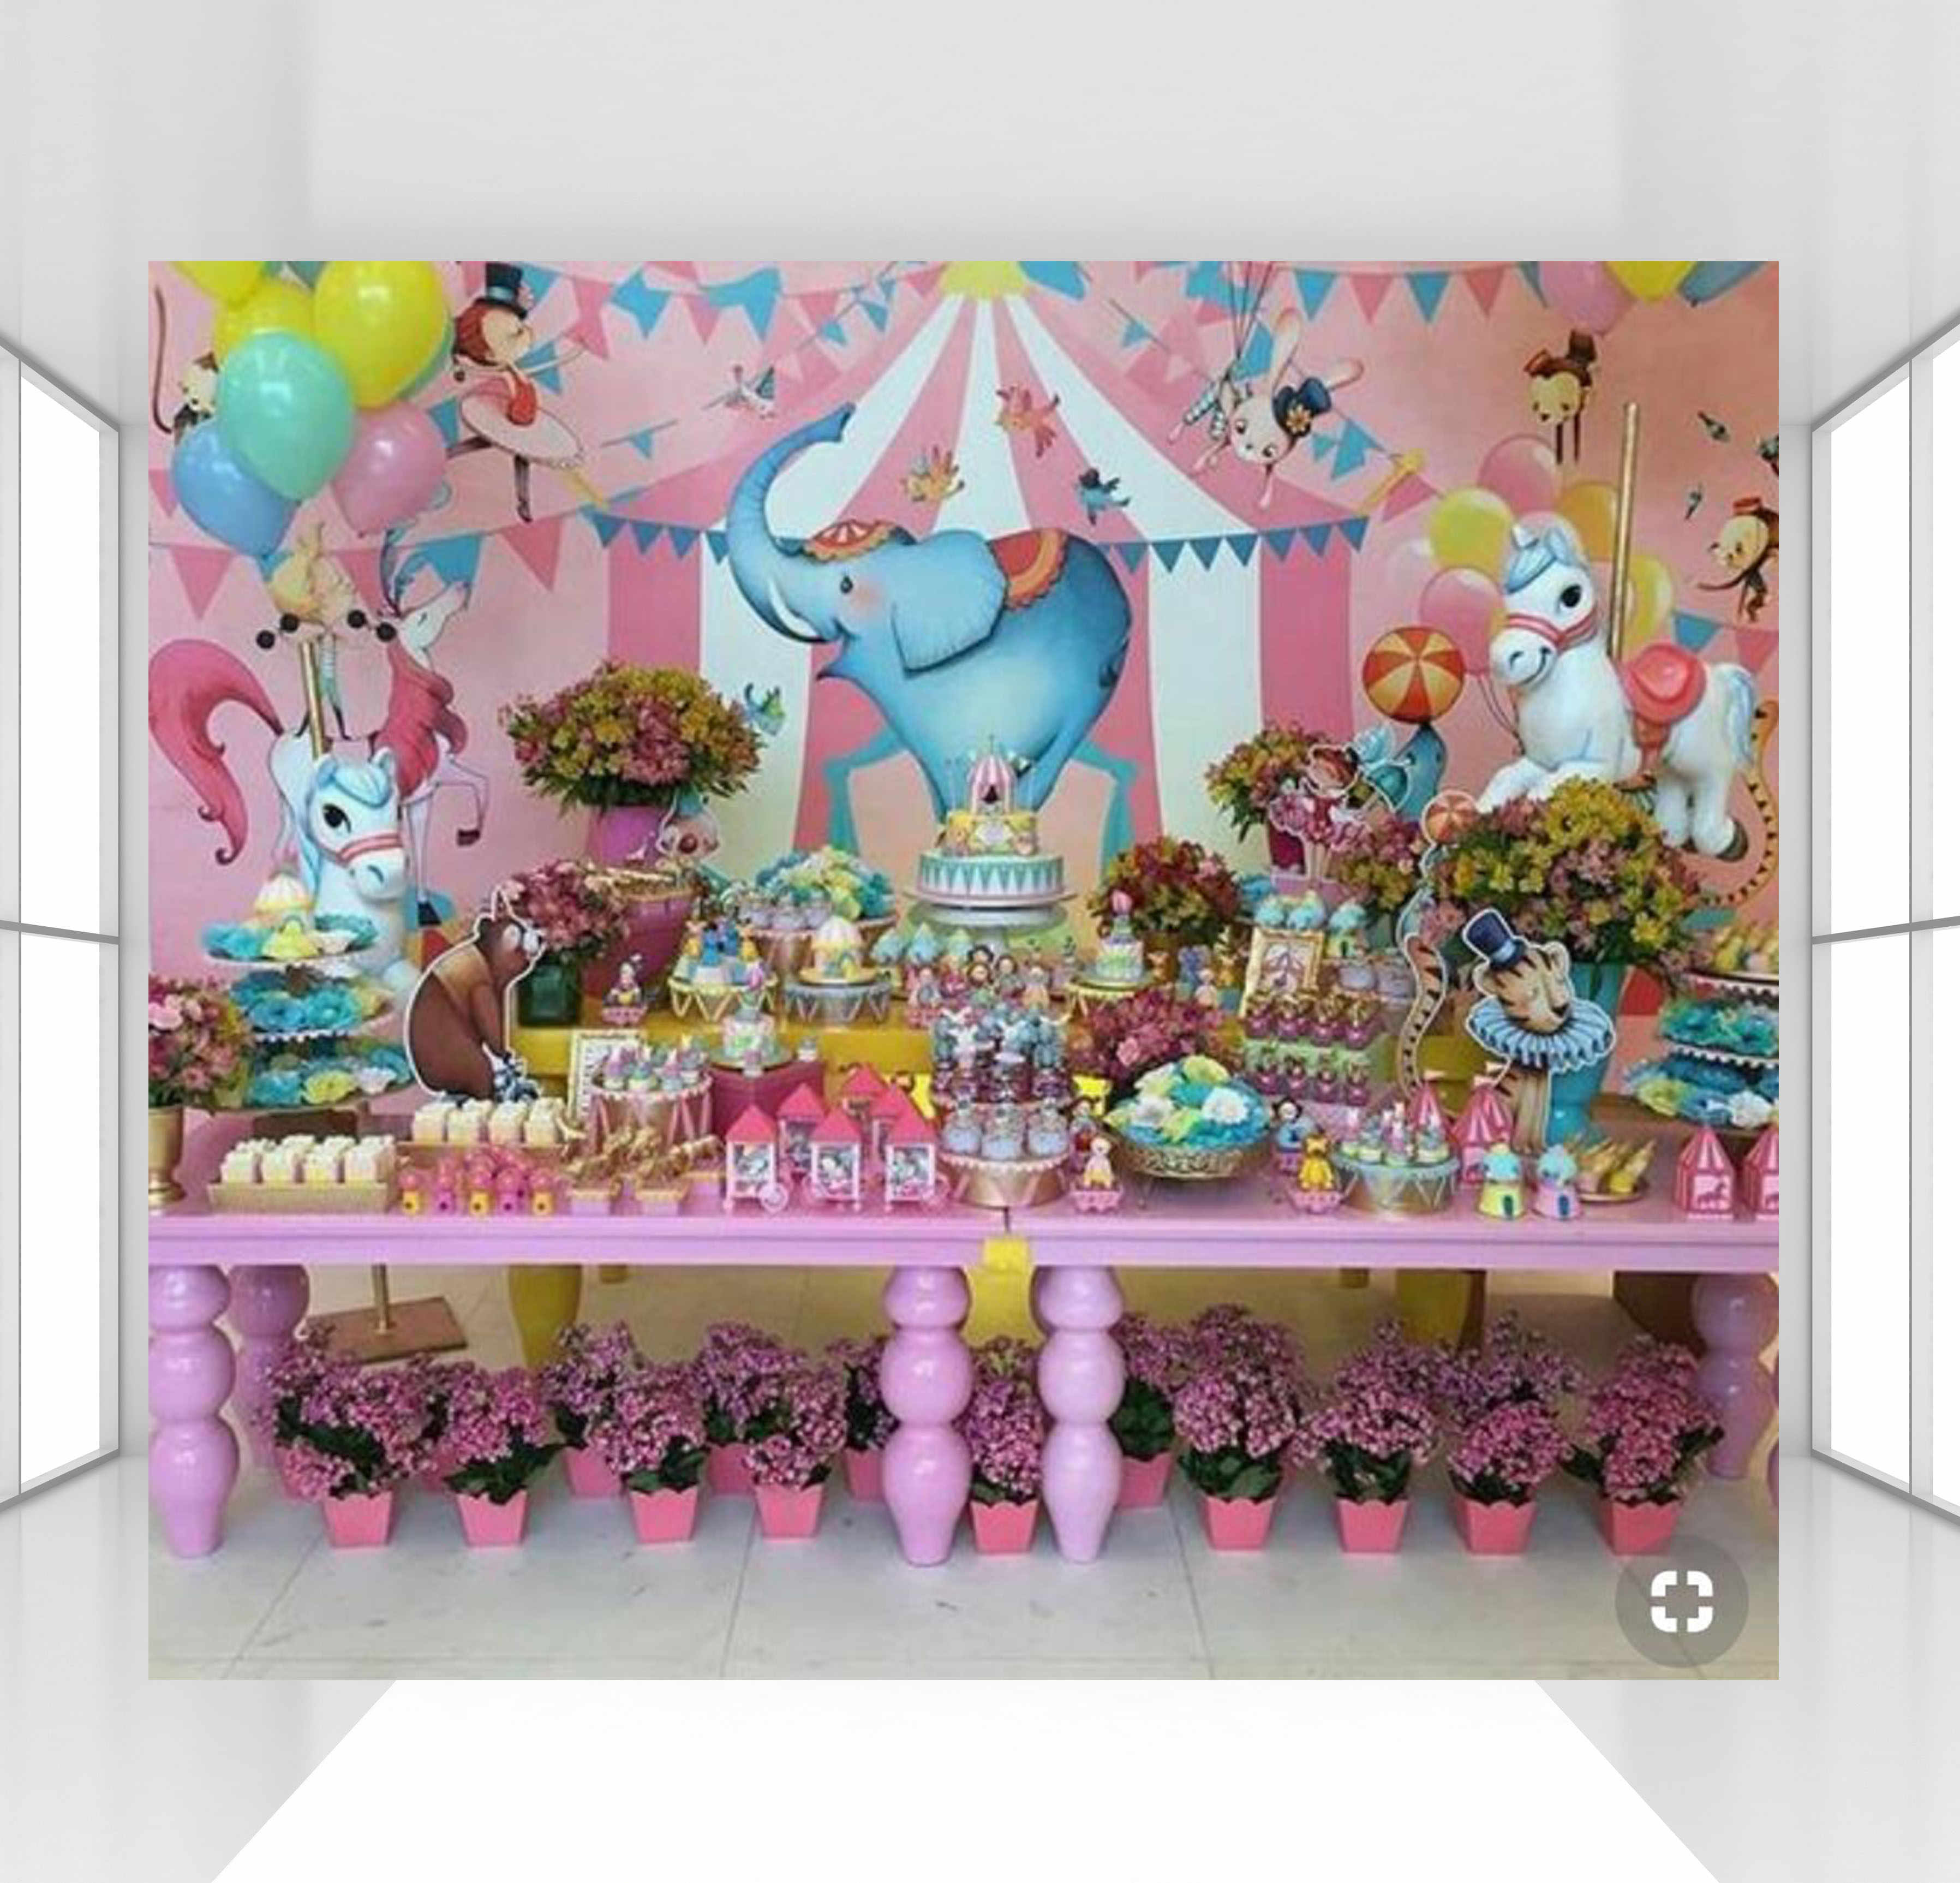 Tent Decorations For Birthday Party  from ae01.alicdn.com